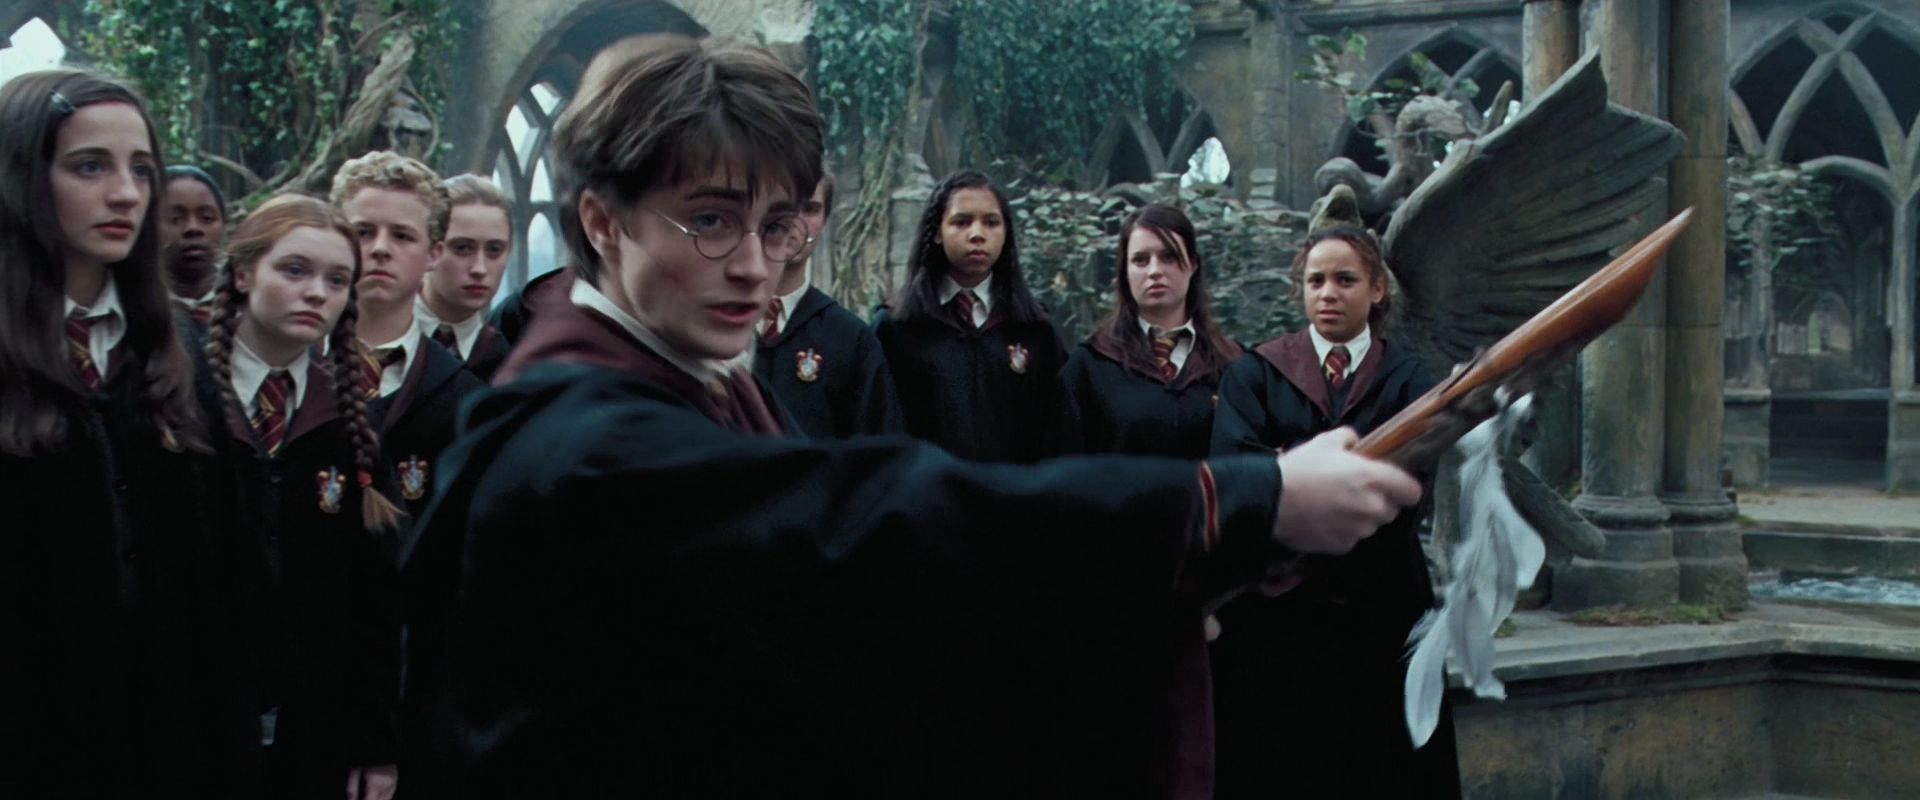 35 Things You Might Not Know About Harry Potter